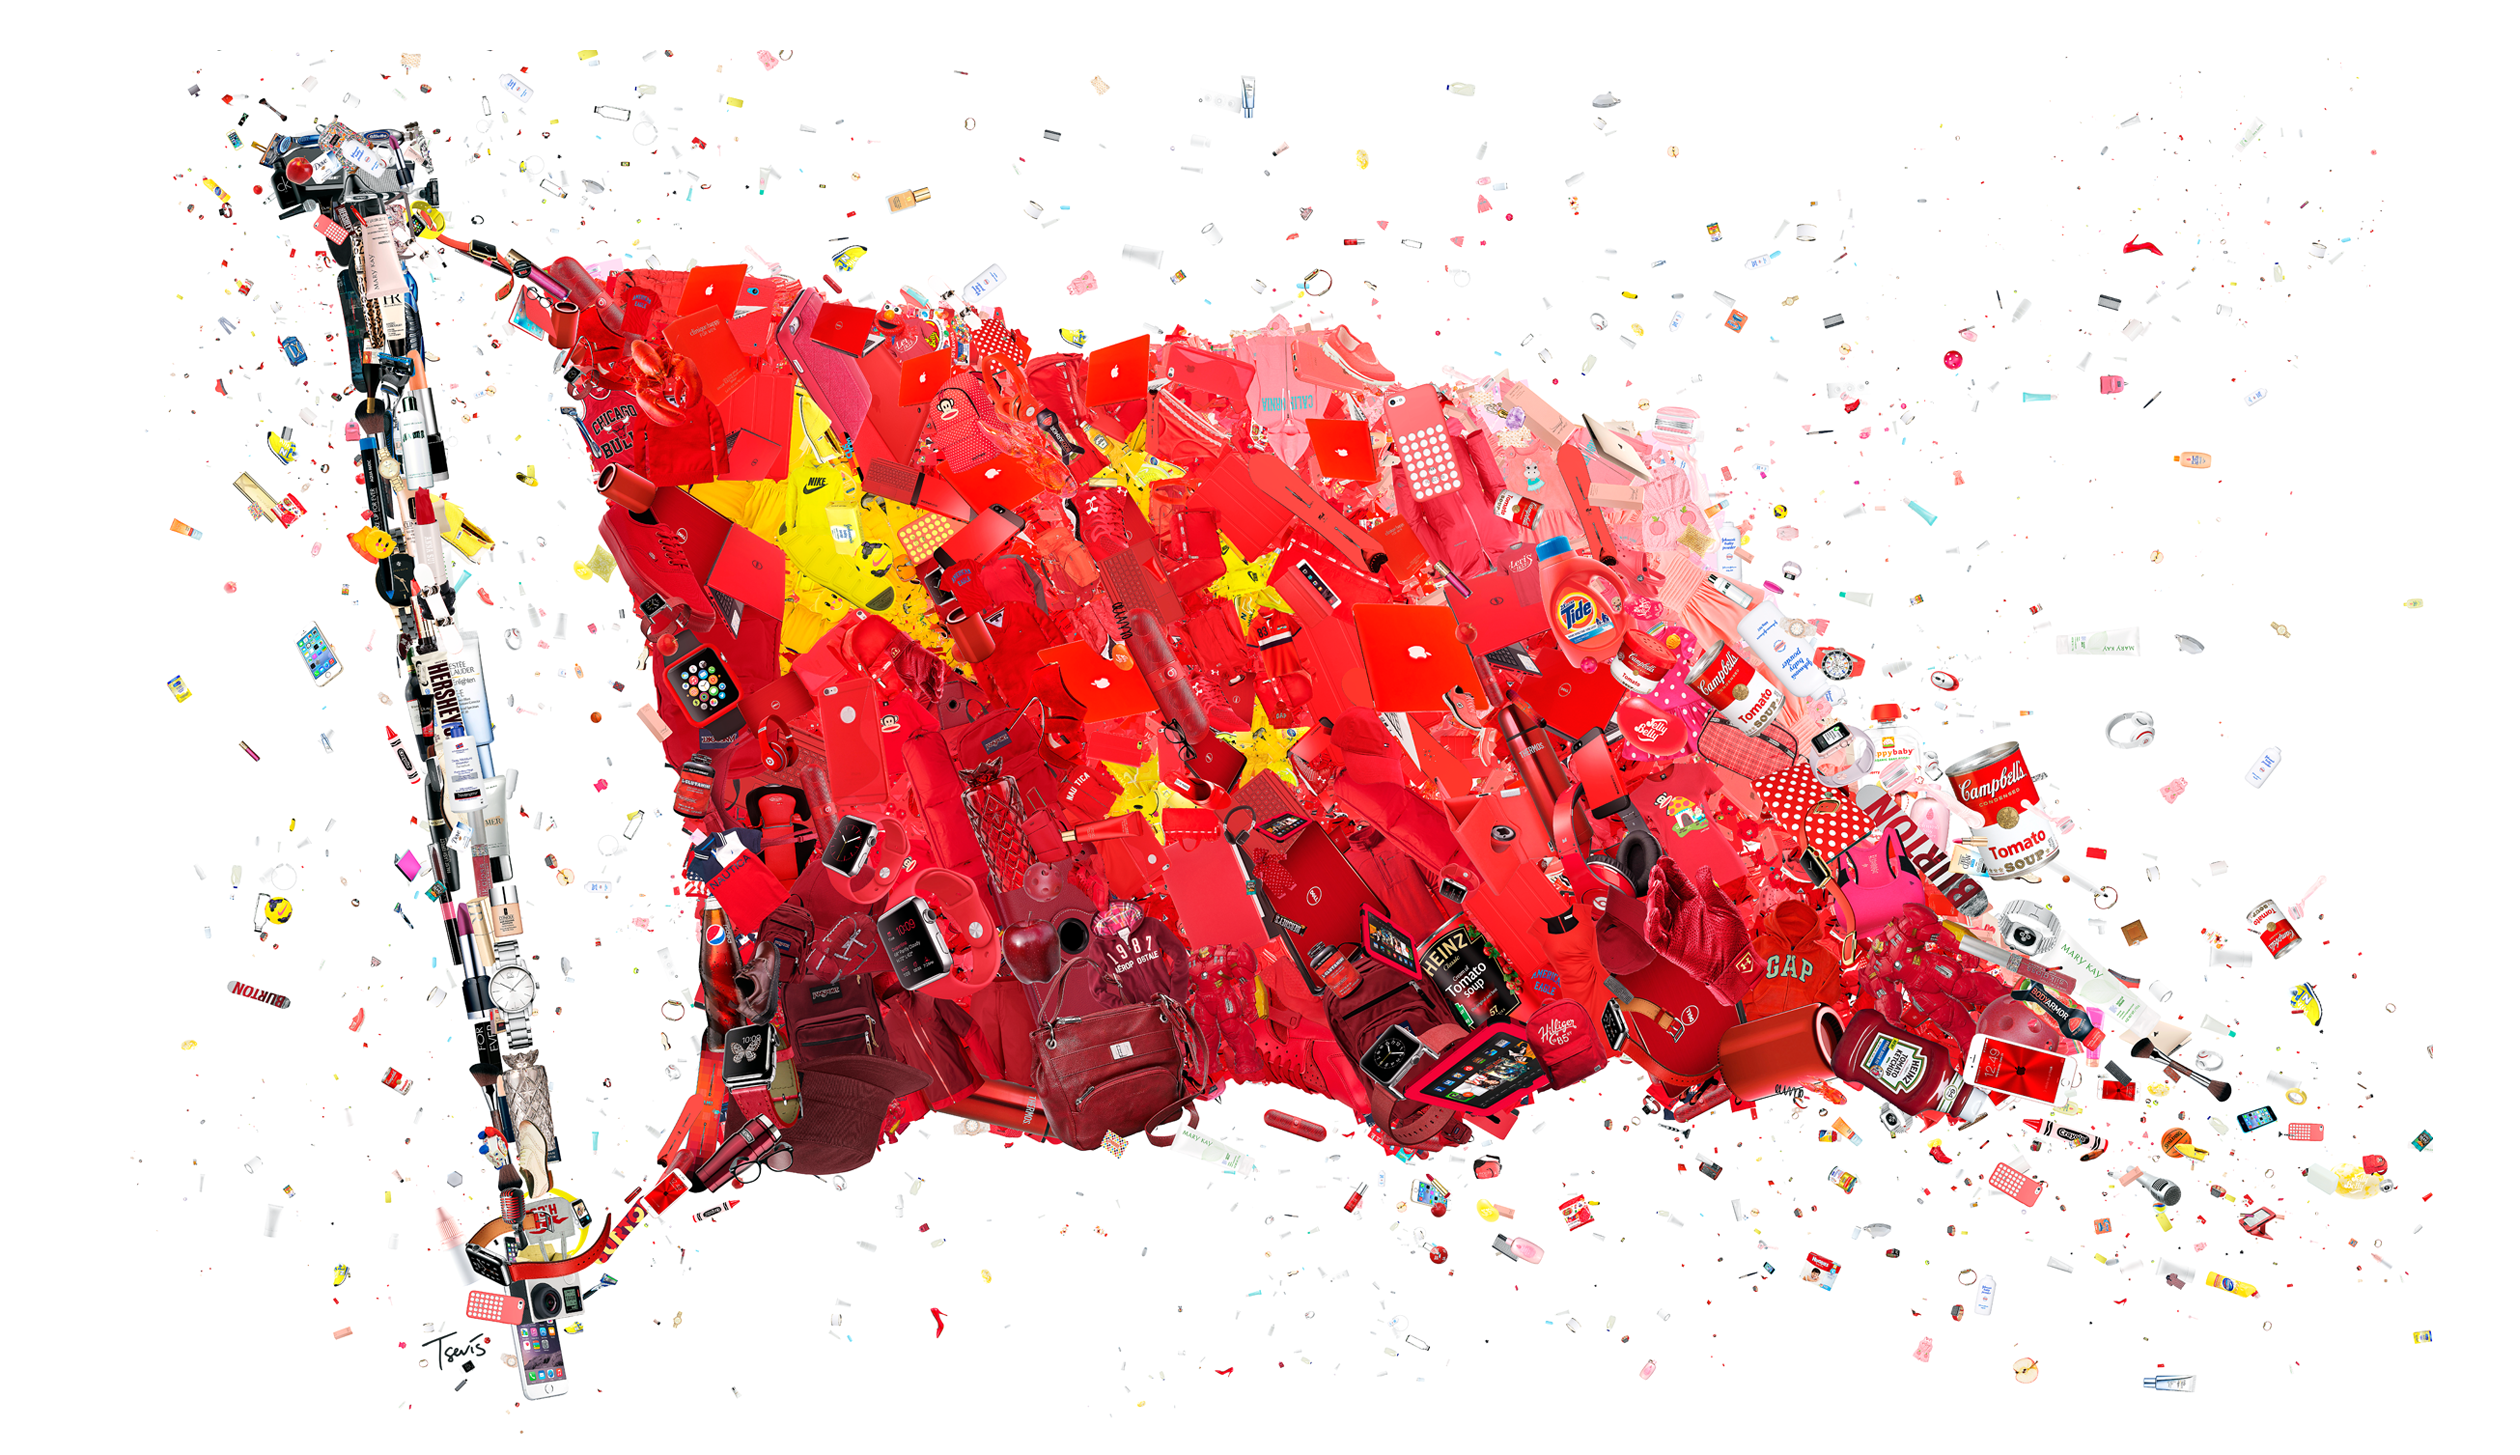 China promotes its companies to buy famous brands worldwide